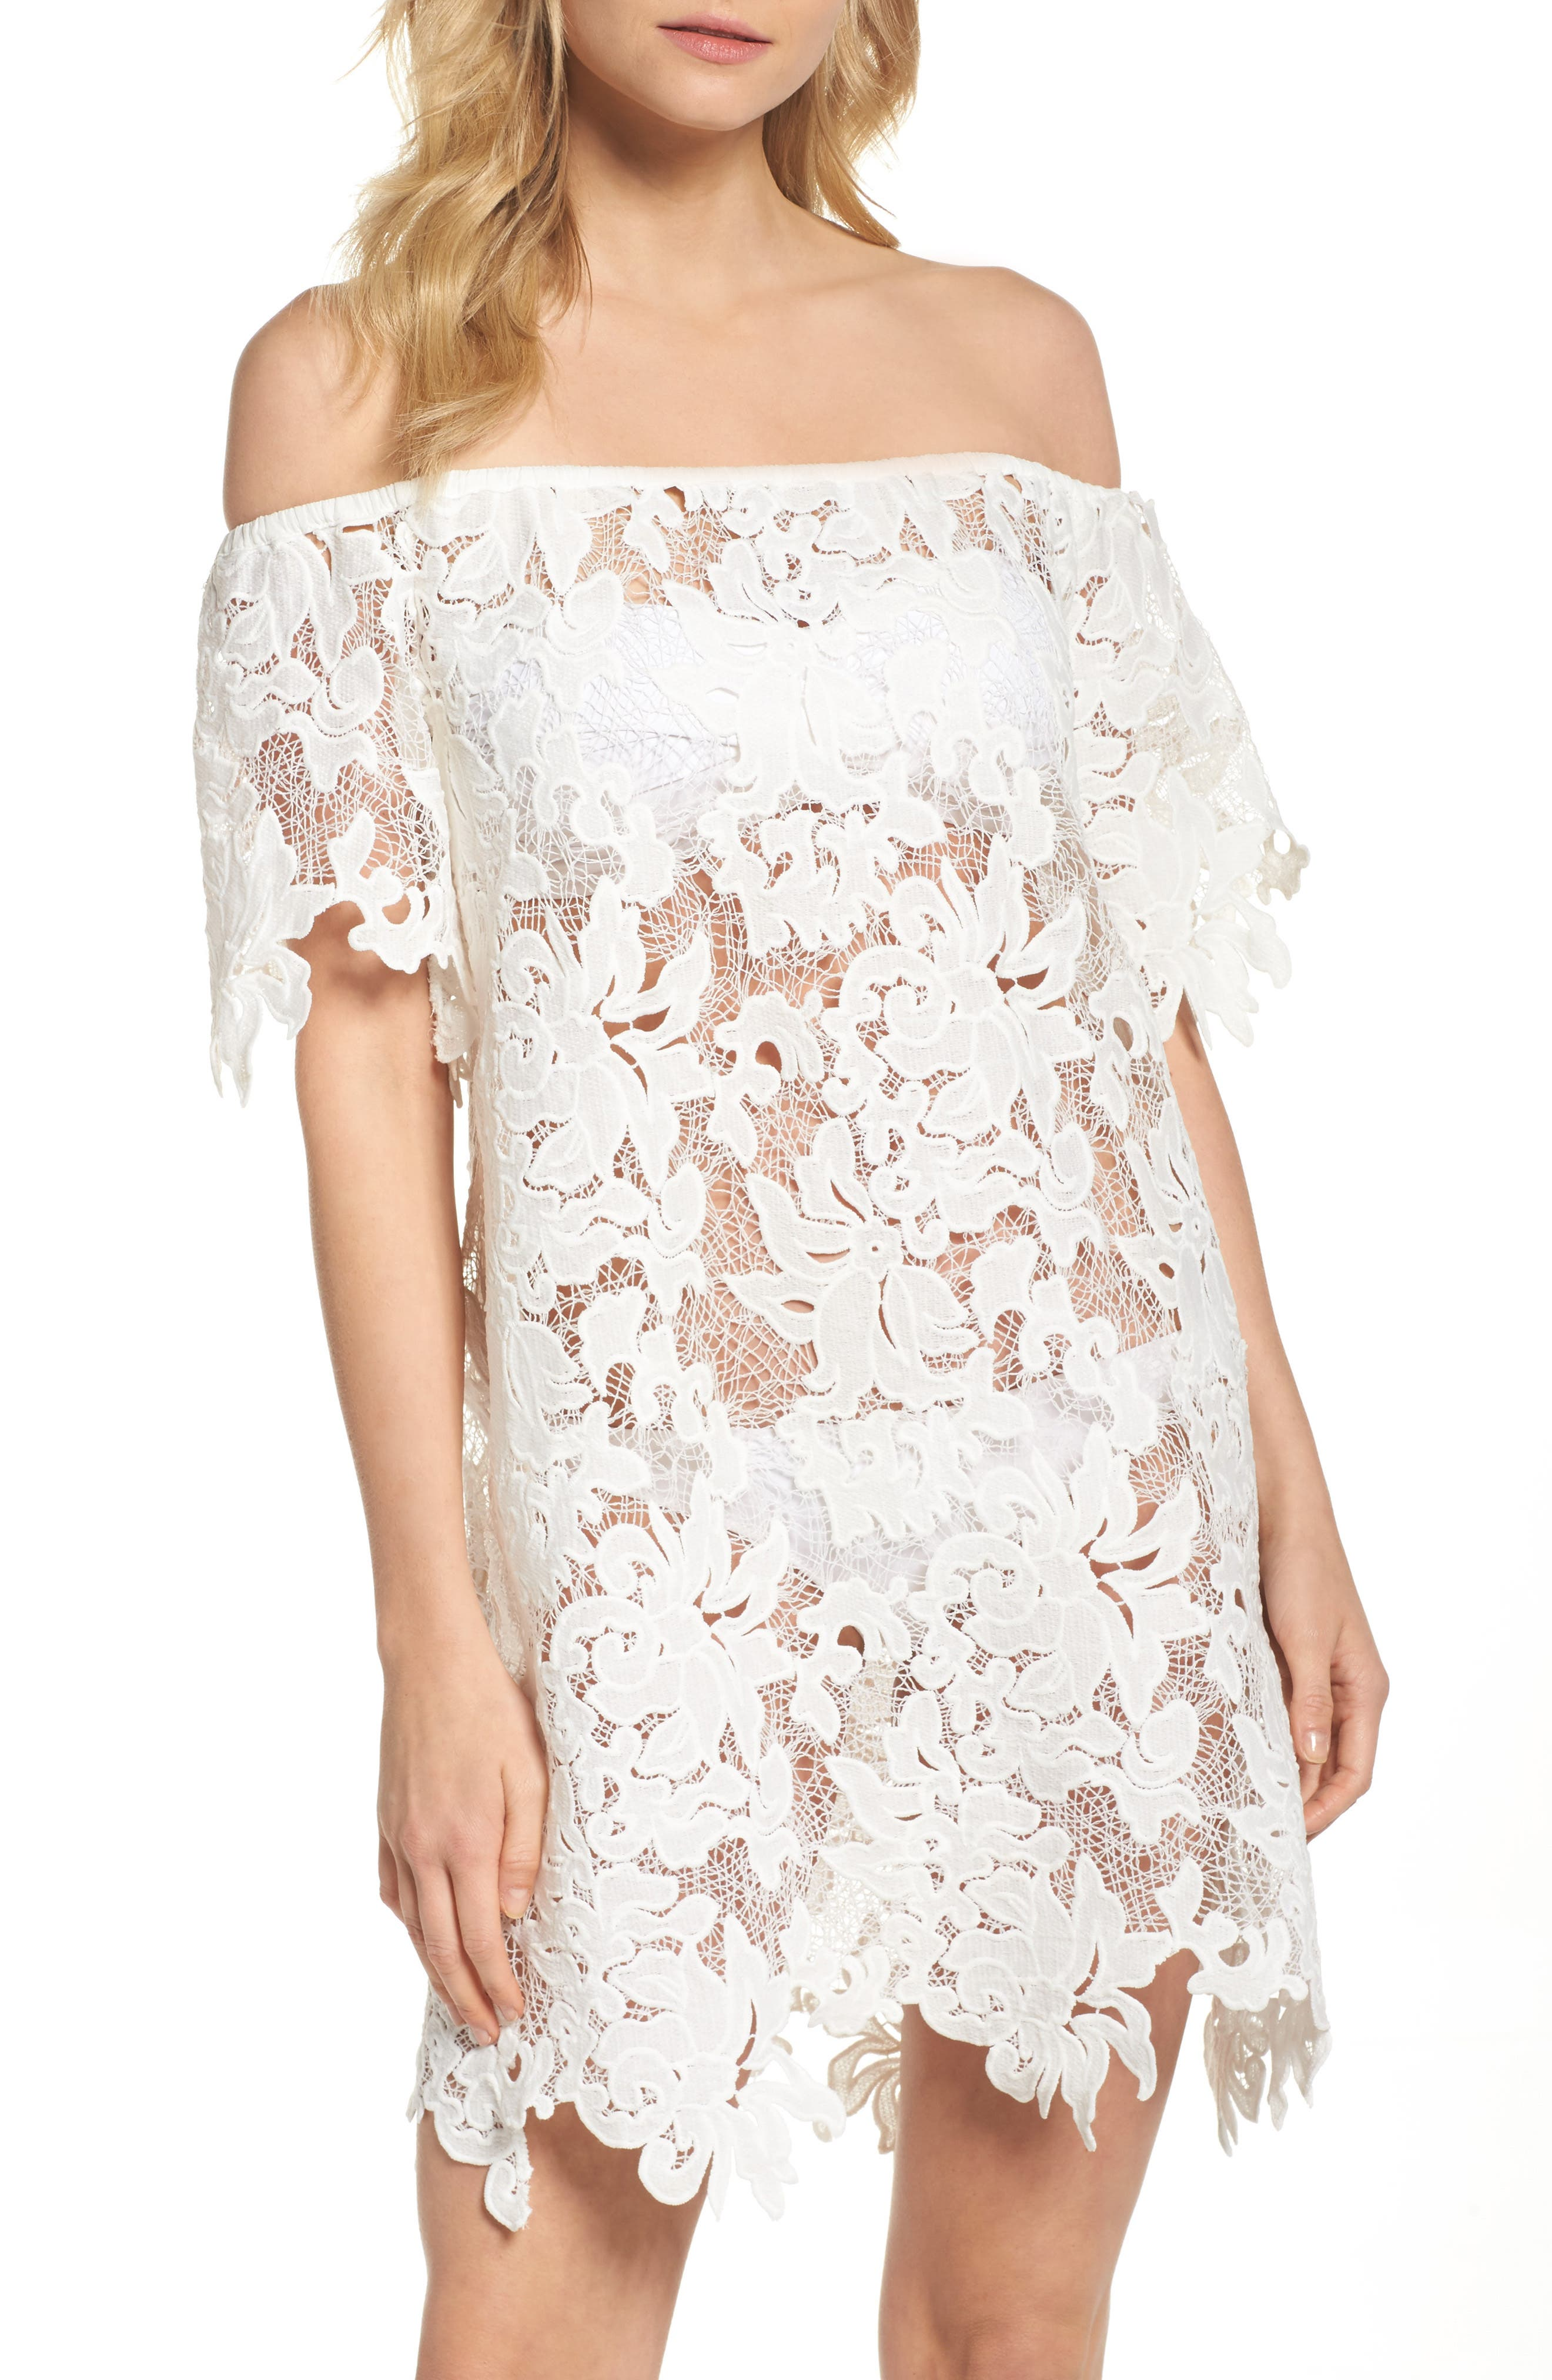 Ode Rosette Lace Cover-Up Dress,                         Main,                         color, 100